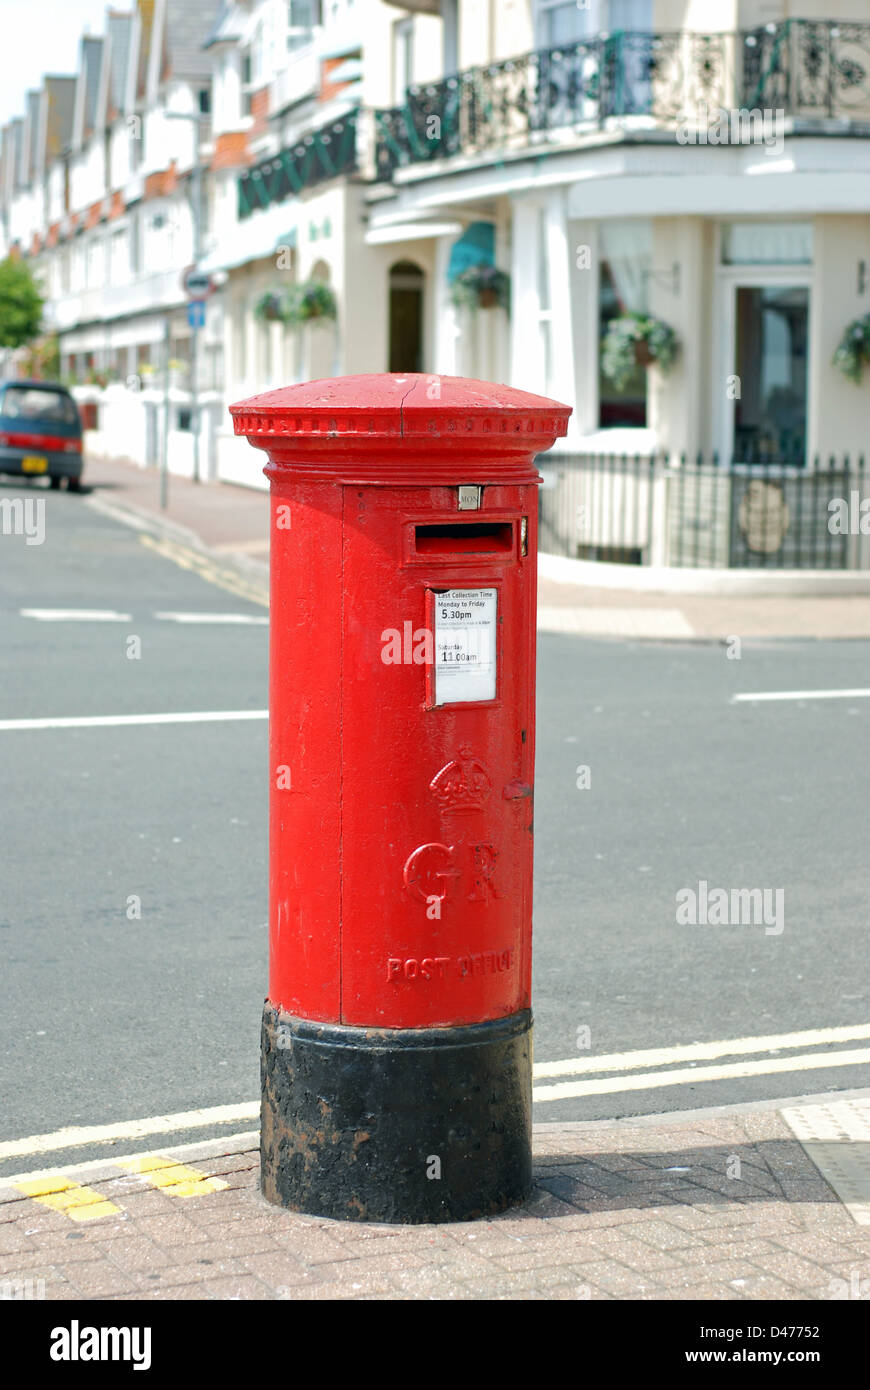 red British mail box on a city street - Stock Image